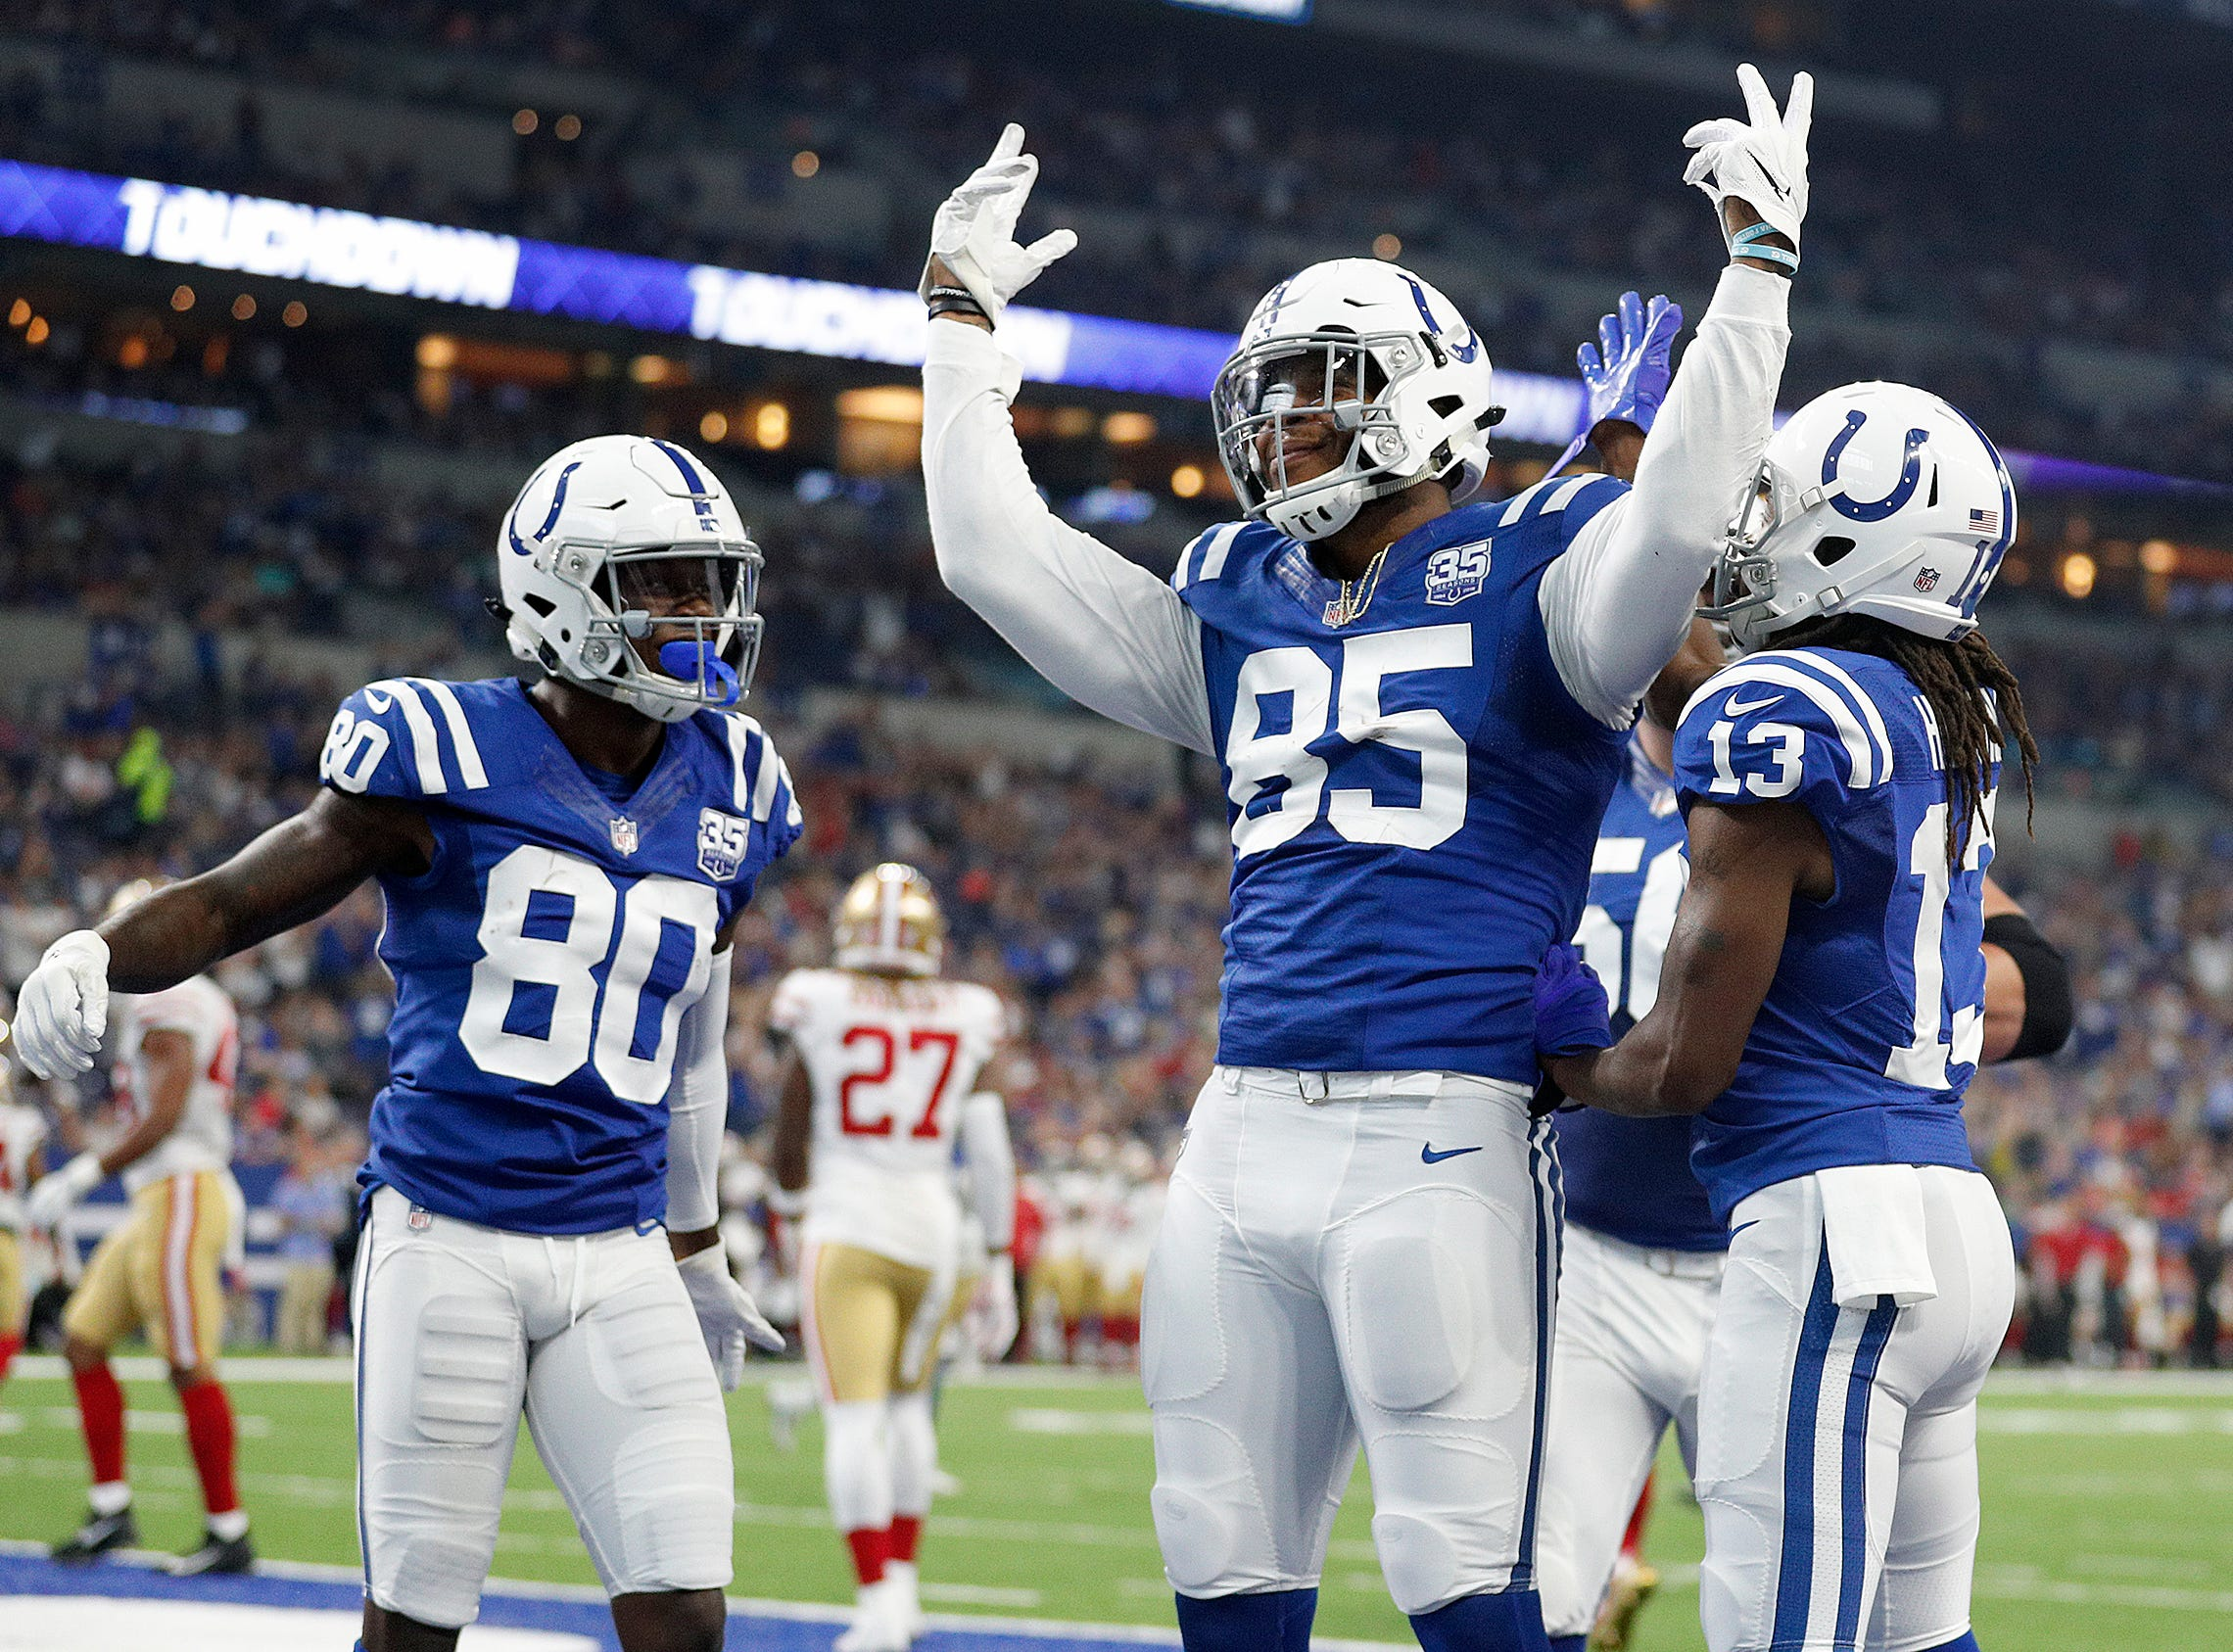 Indianapolis Colts tight end Eric Ebron (85) celebrates his touchdown  in the first half of their preseason football game at Lucas Oil Stadium Saturday, August 25, 2018.